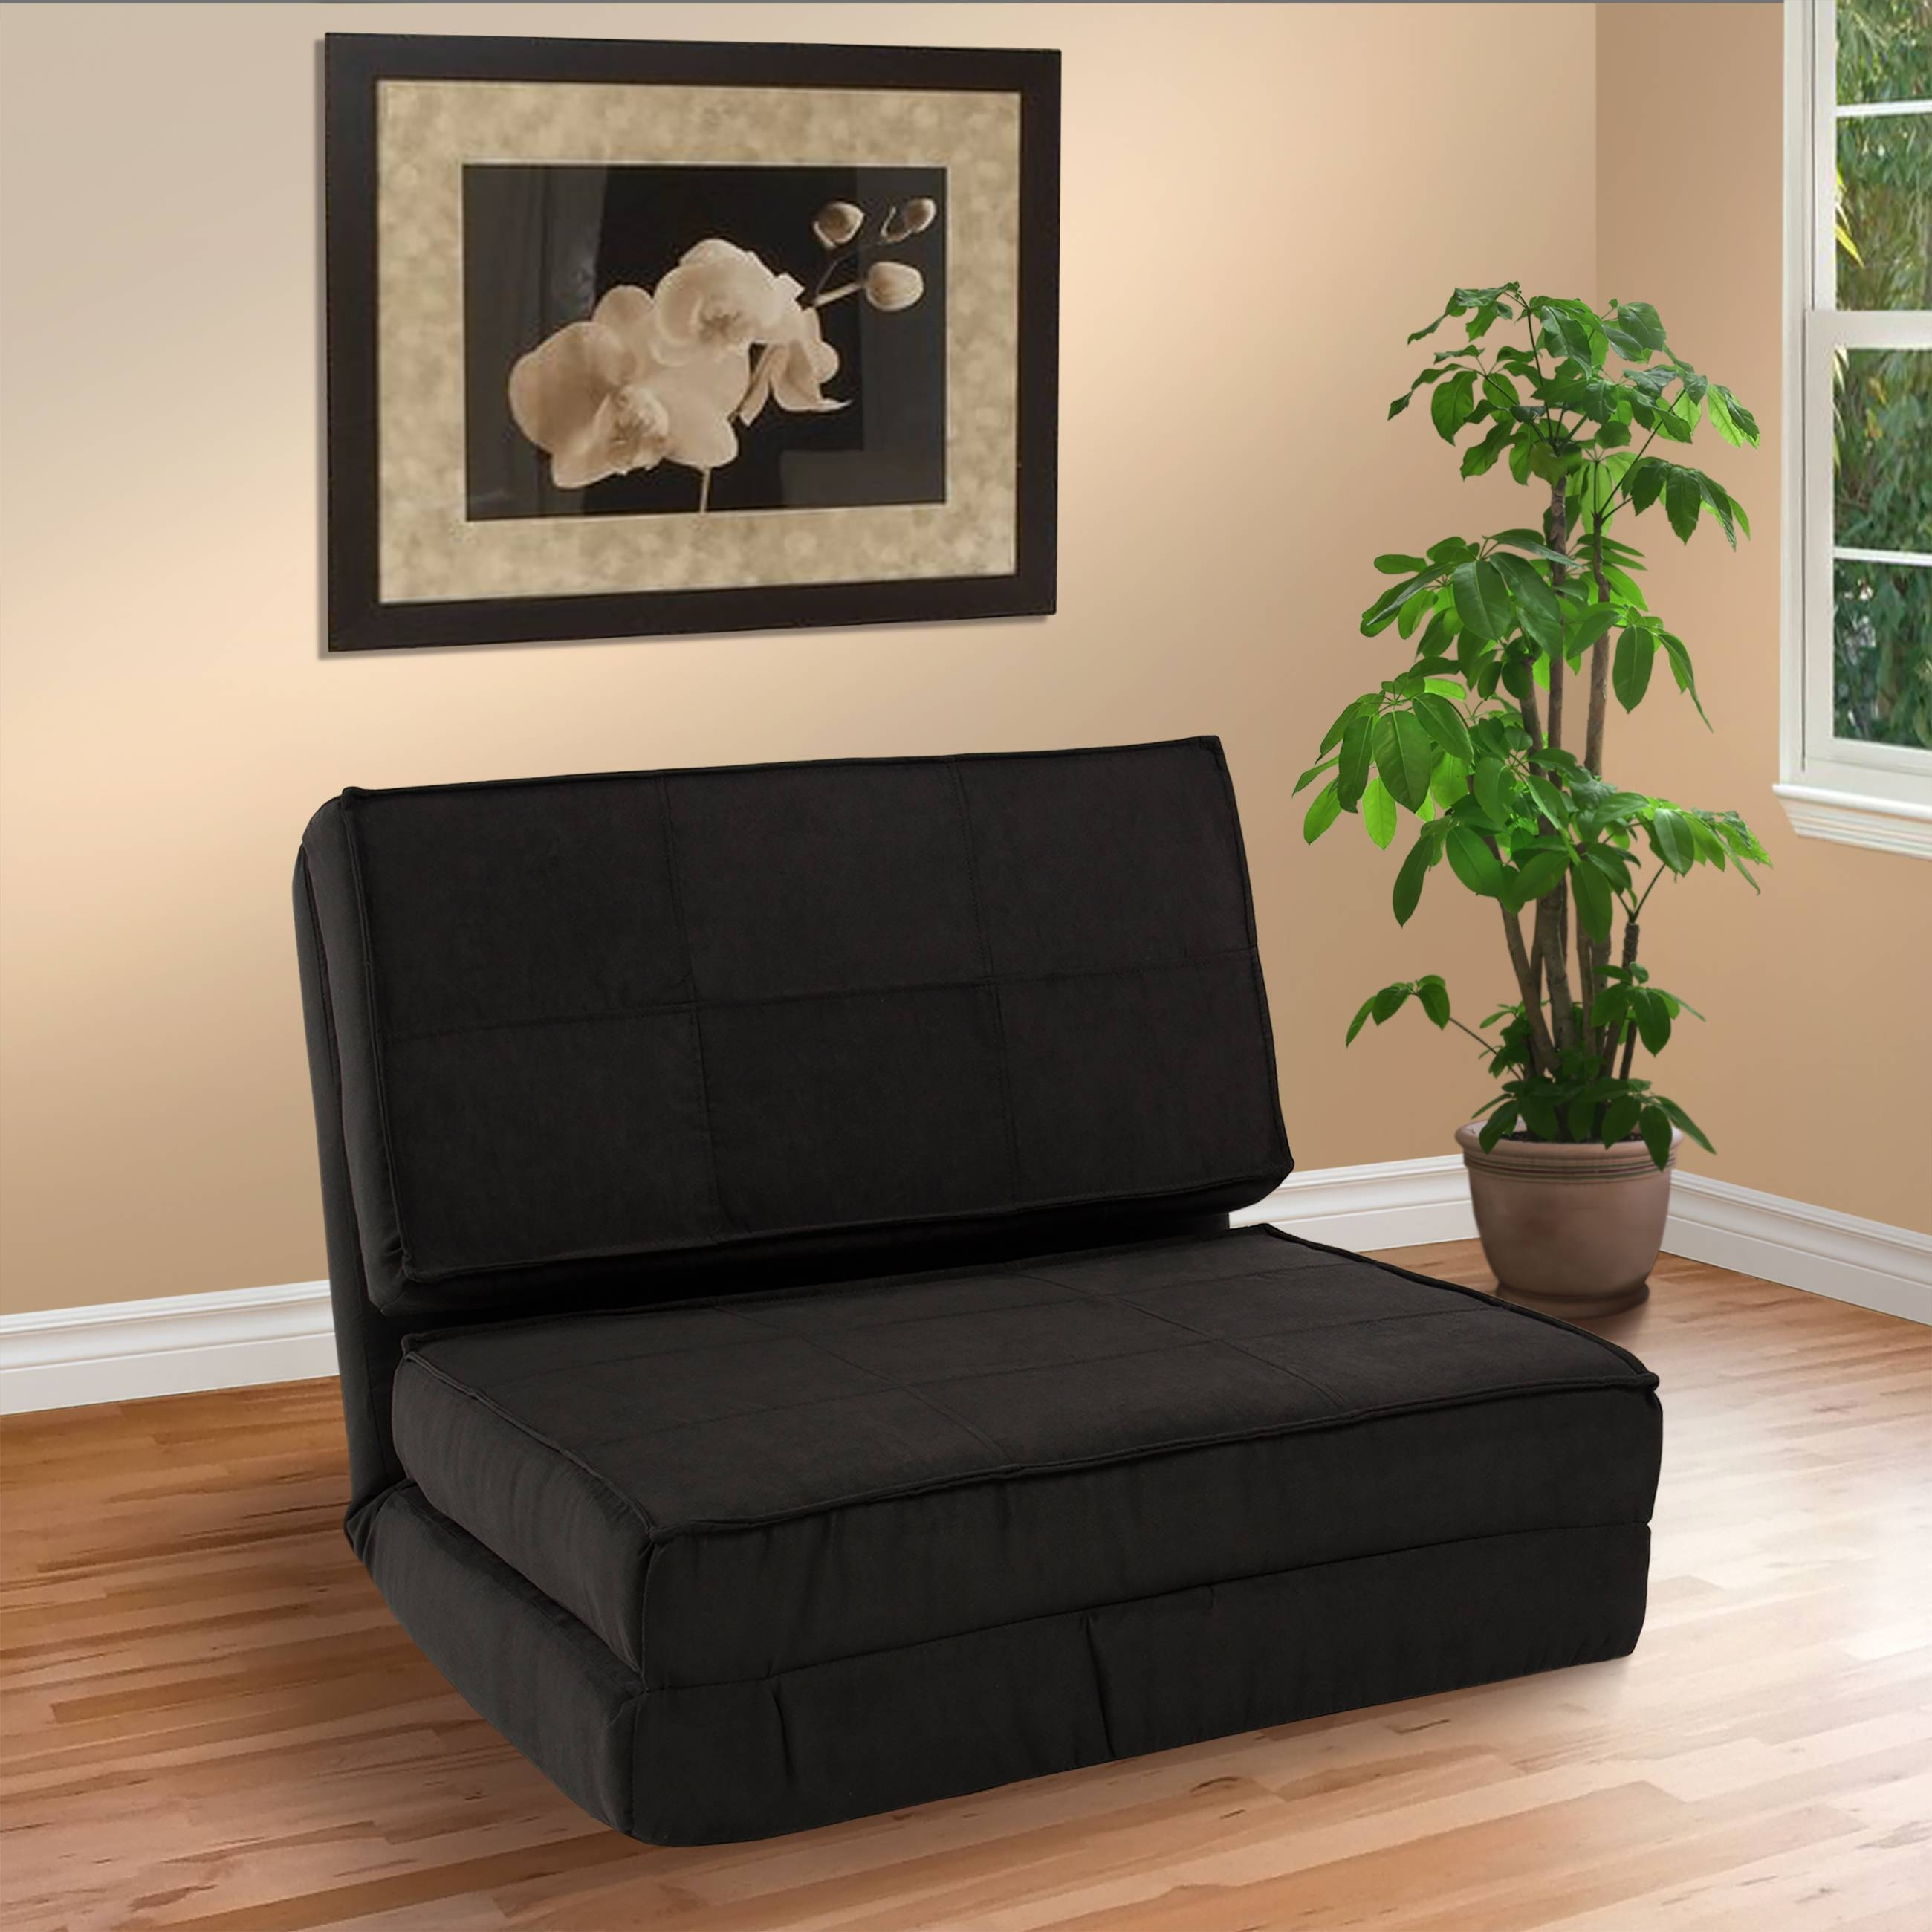 Best Choice Products Convertible Sleeper Chair Bed (Black with Folding Sofa Chairs (Image 7 of 30)